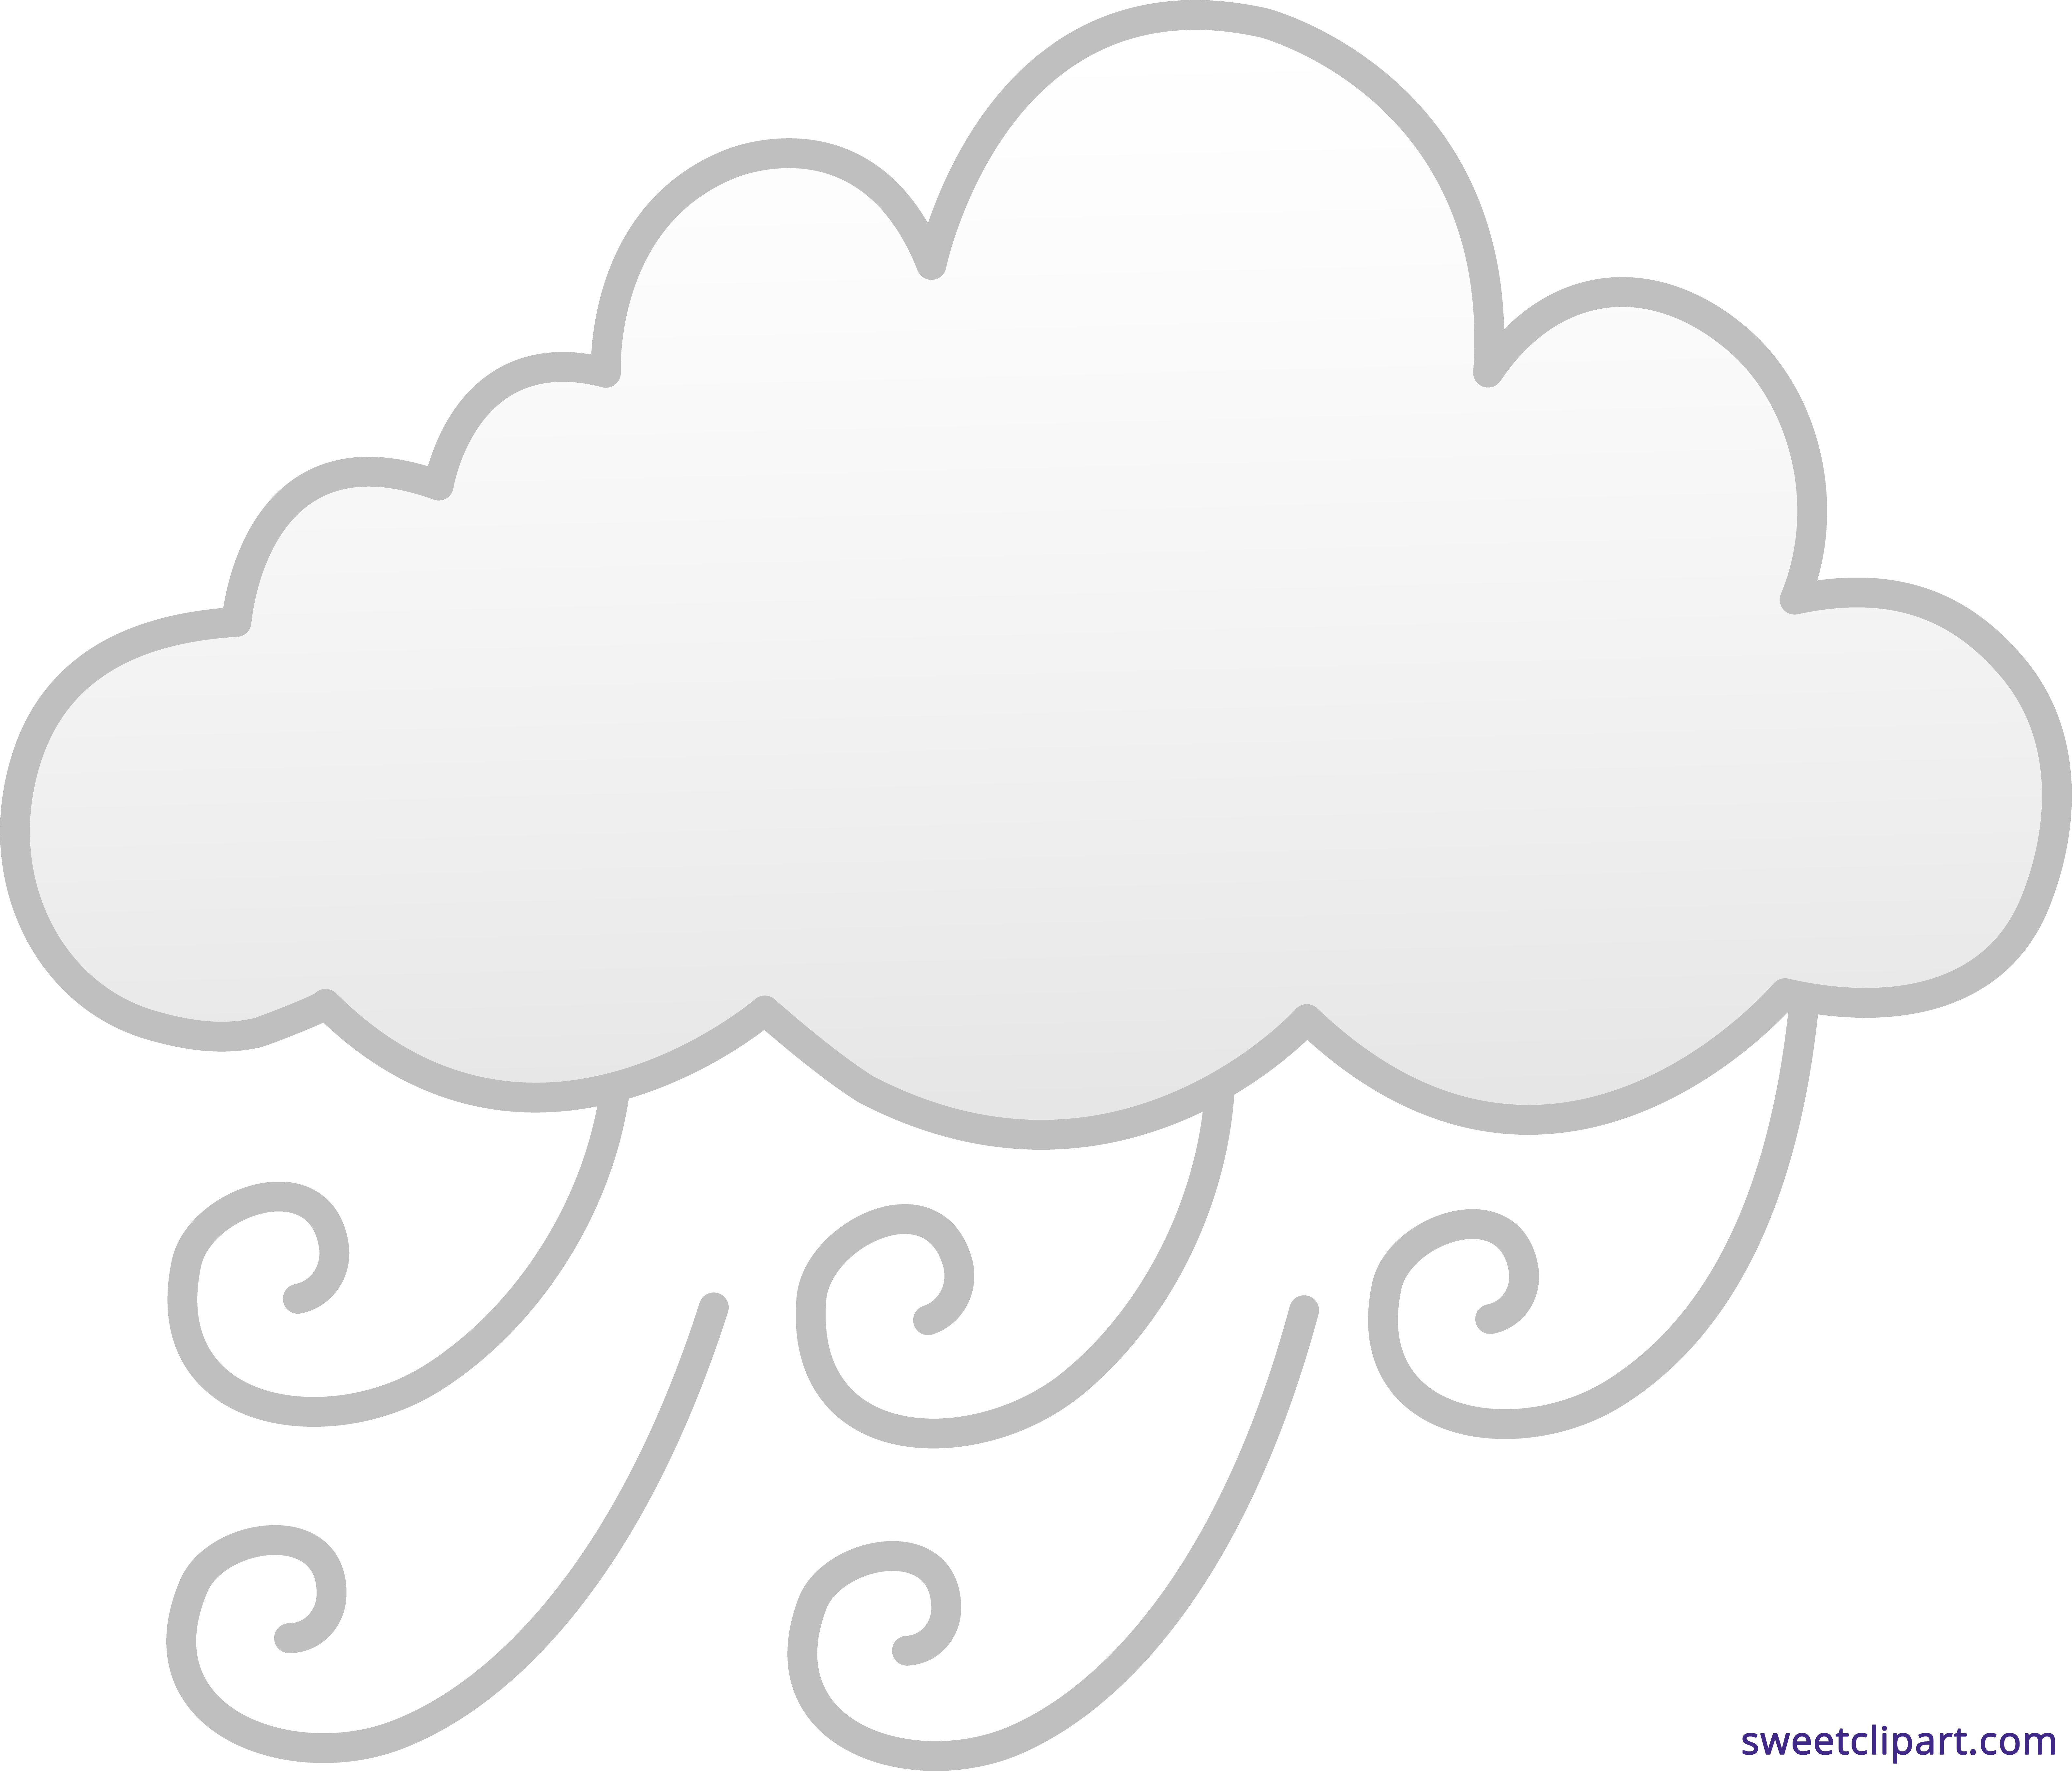 Windy or foggy weather. Fog clipart windyweather